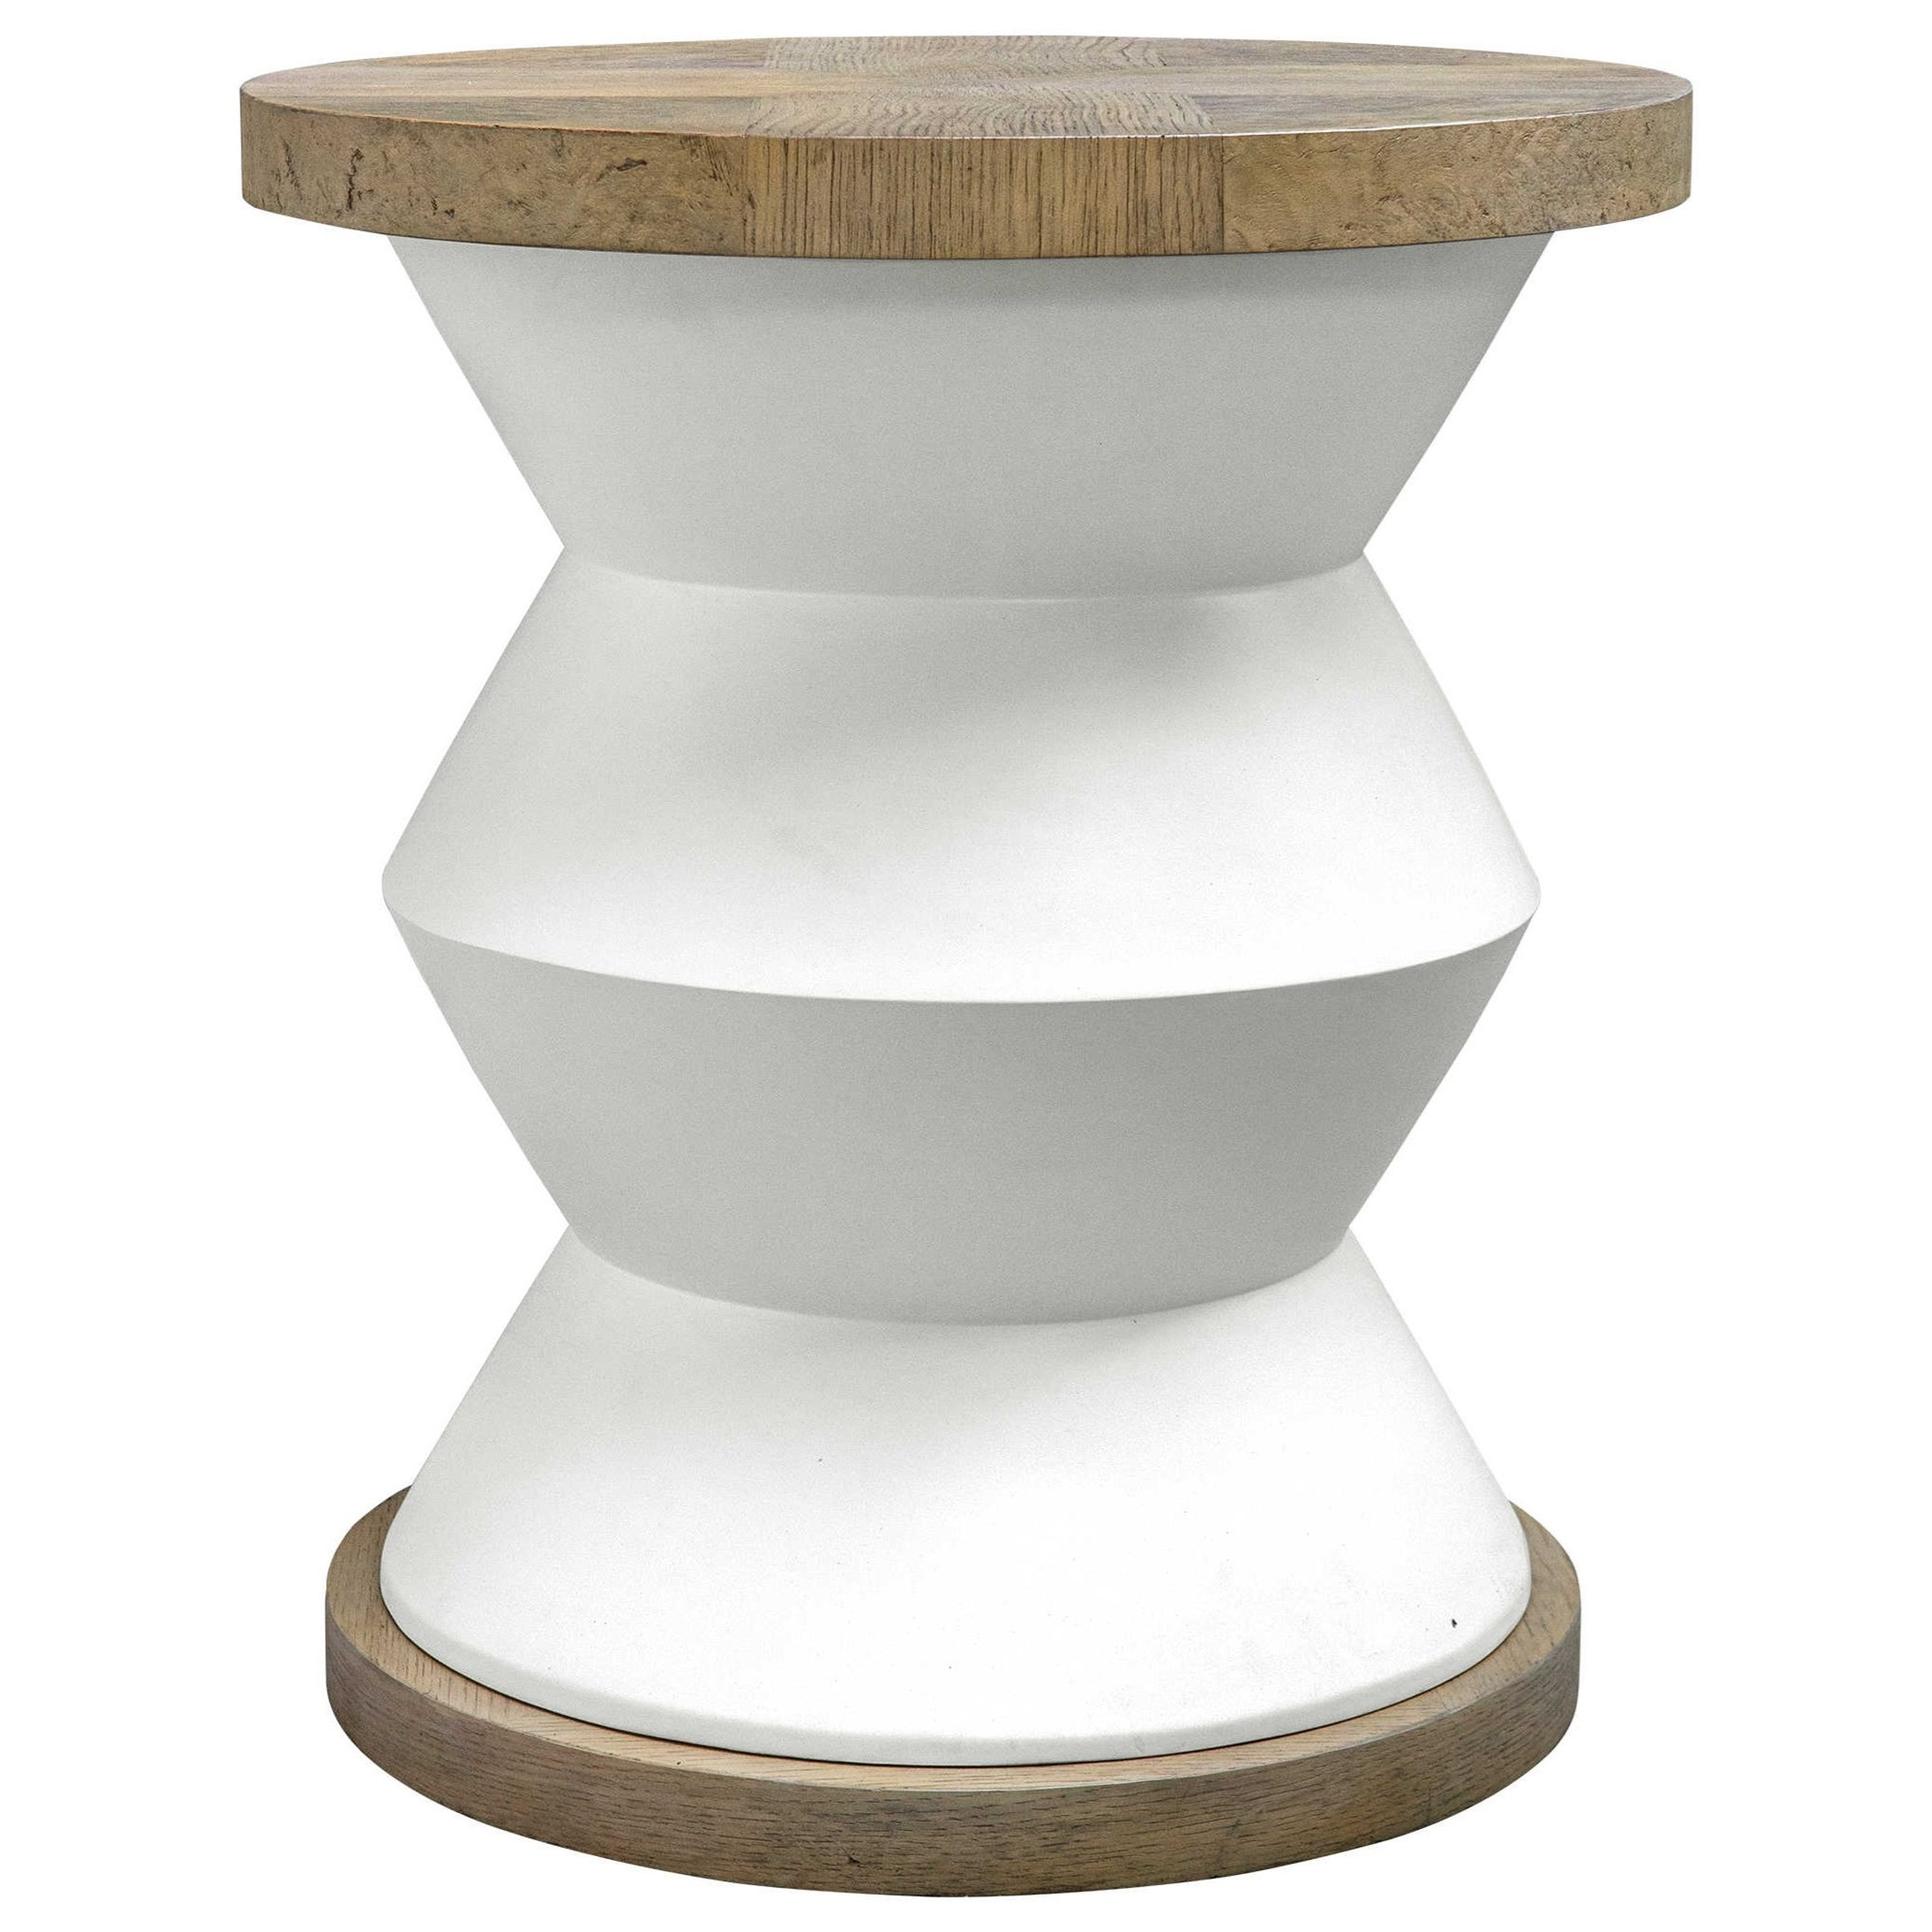 Accent Furniture - Occasional Tables Spool Geometric Side Table by Uttermost at Reid's Furniture